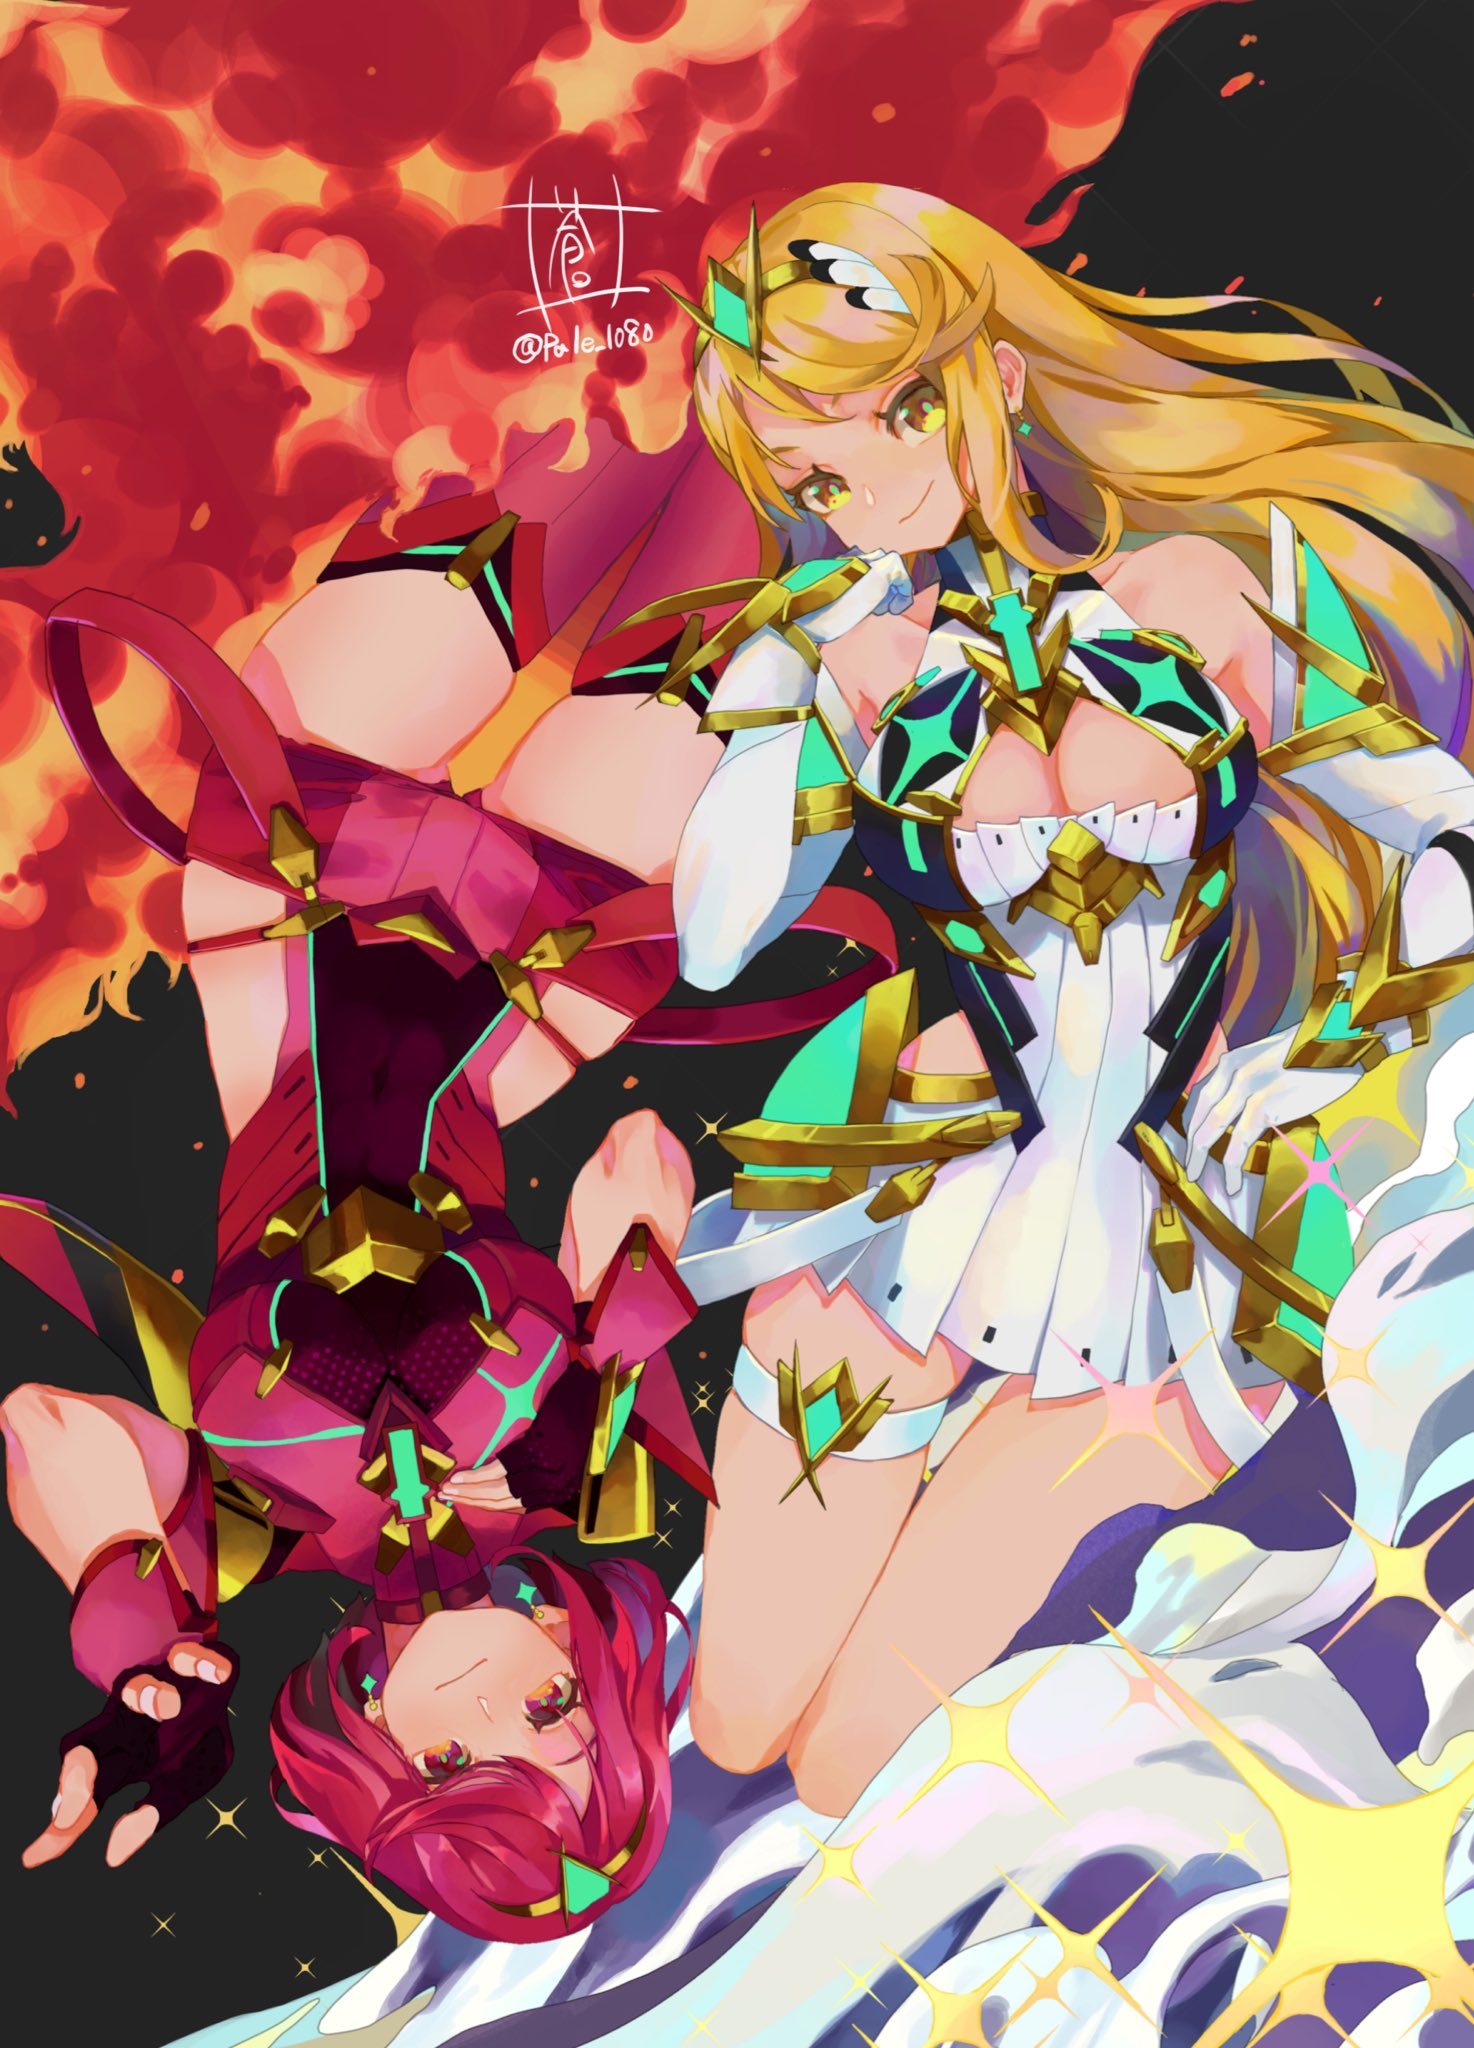 2girls blonde_hair breasts dual_persona earrings fire highres jewelry large_breasts long_hair miniskirt multiple_girls mythra_(xenoblade) pyra_(xenoblade) redhead short_hair shorts skindentation skirt sou_(pale_1080) xenoblade_chronicles_(series) xenoblade_chronicles_2 yellow_eyes